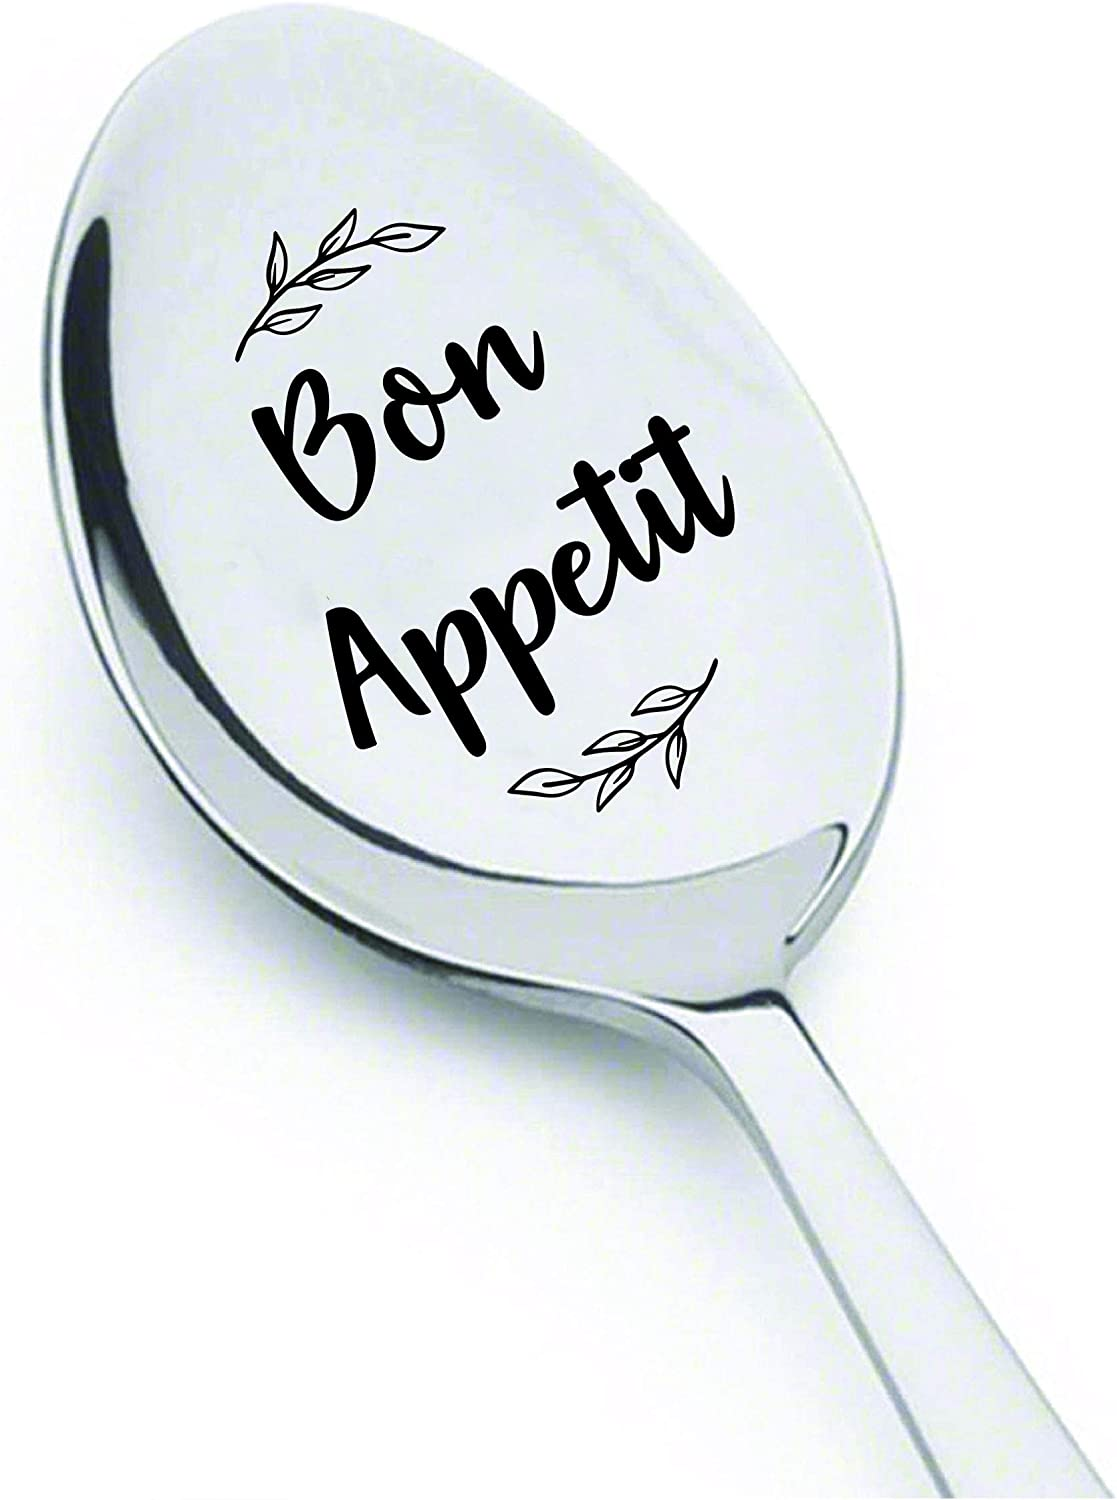 Gift for Friend | Bon Appetit Engraved Spoon for Foodie | Funny Teen Christmas Birthday Gift | Holiday Gift for Cousins/BFF | Food Lover Gift for Men Women - 7 Inch Stainless Steel Spoon